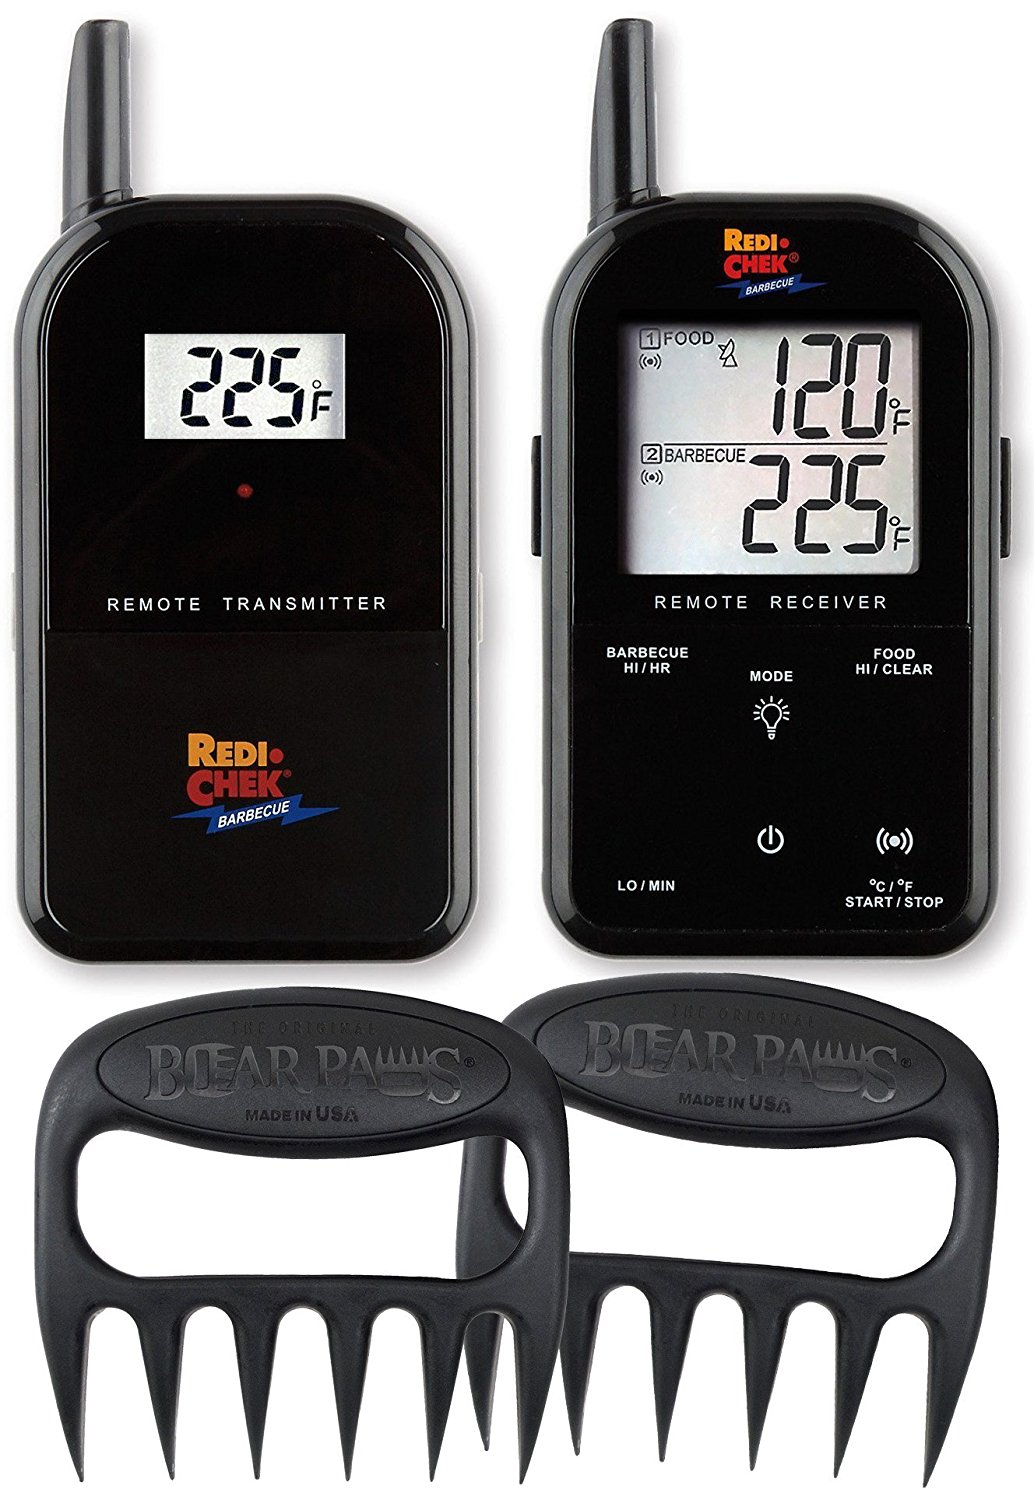 Maverick Wireless Cooking Thermometer - Includes Bear Paw Meat Handlers